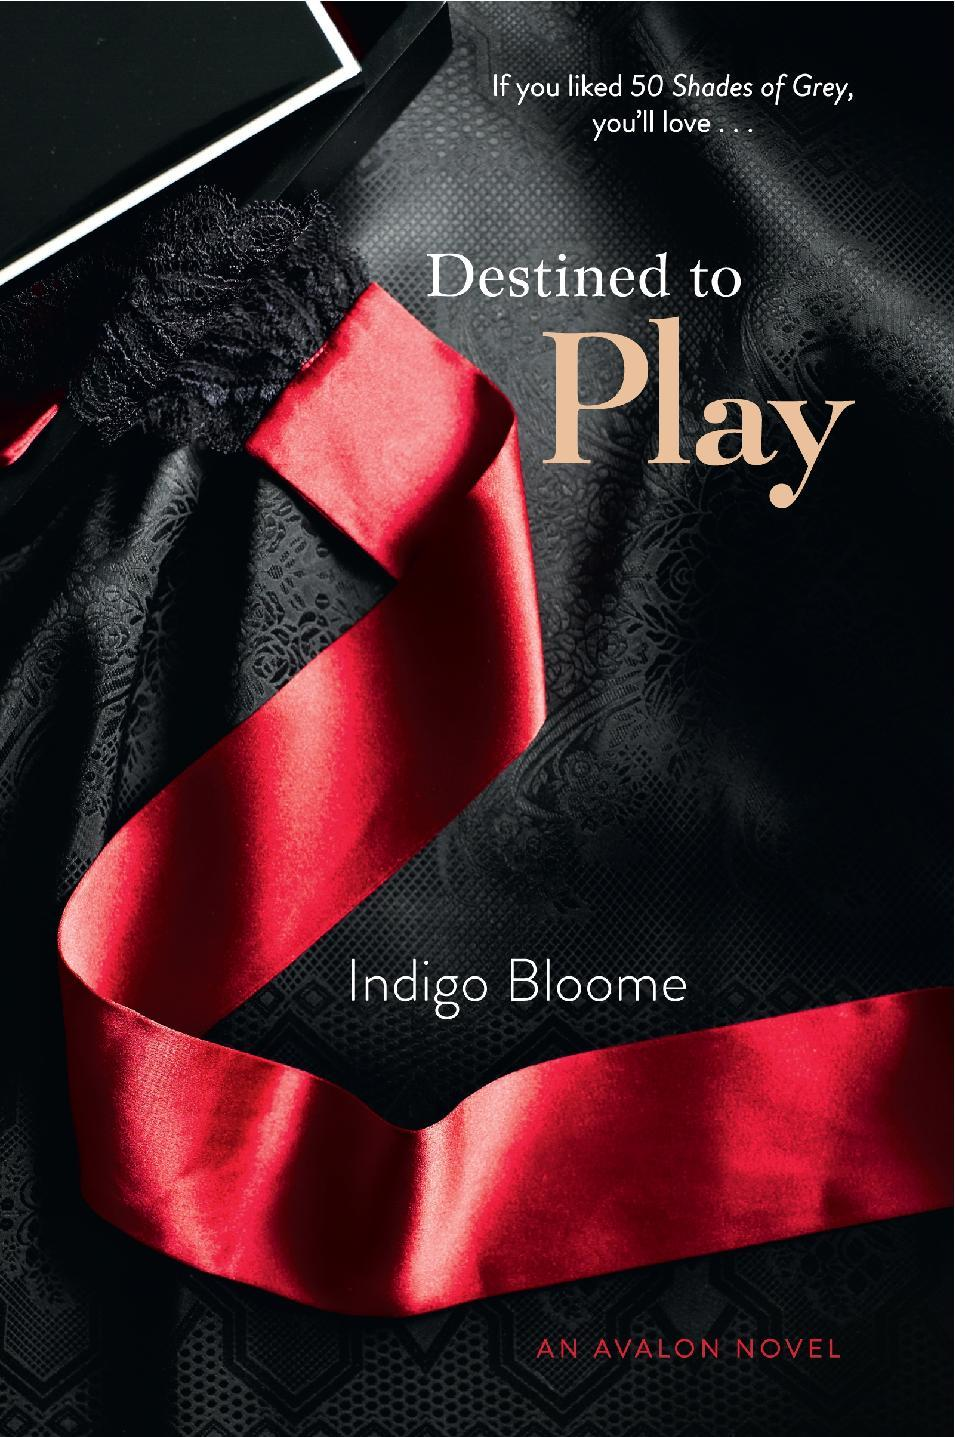 "This book cover image released by Avon Red shows ""Destined to Play,"" by Indigo Bloome. The erotic novel by Australian author Indigo Bloome will be released in paperback on Sept. 11, 2012. (AP Photo/Avon Red)"